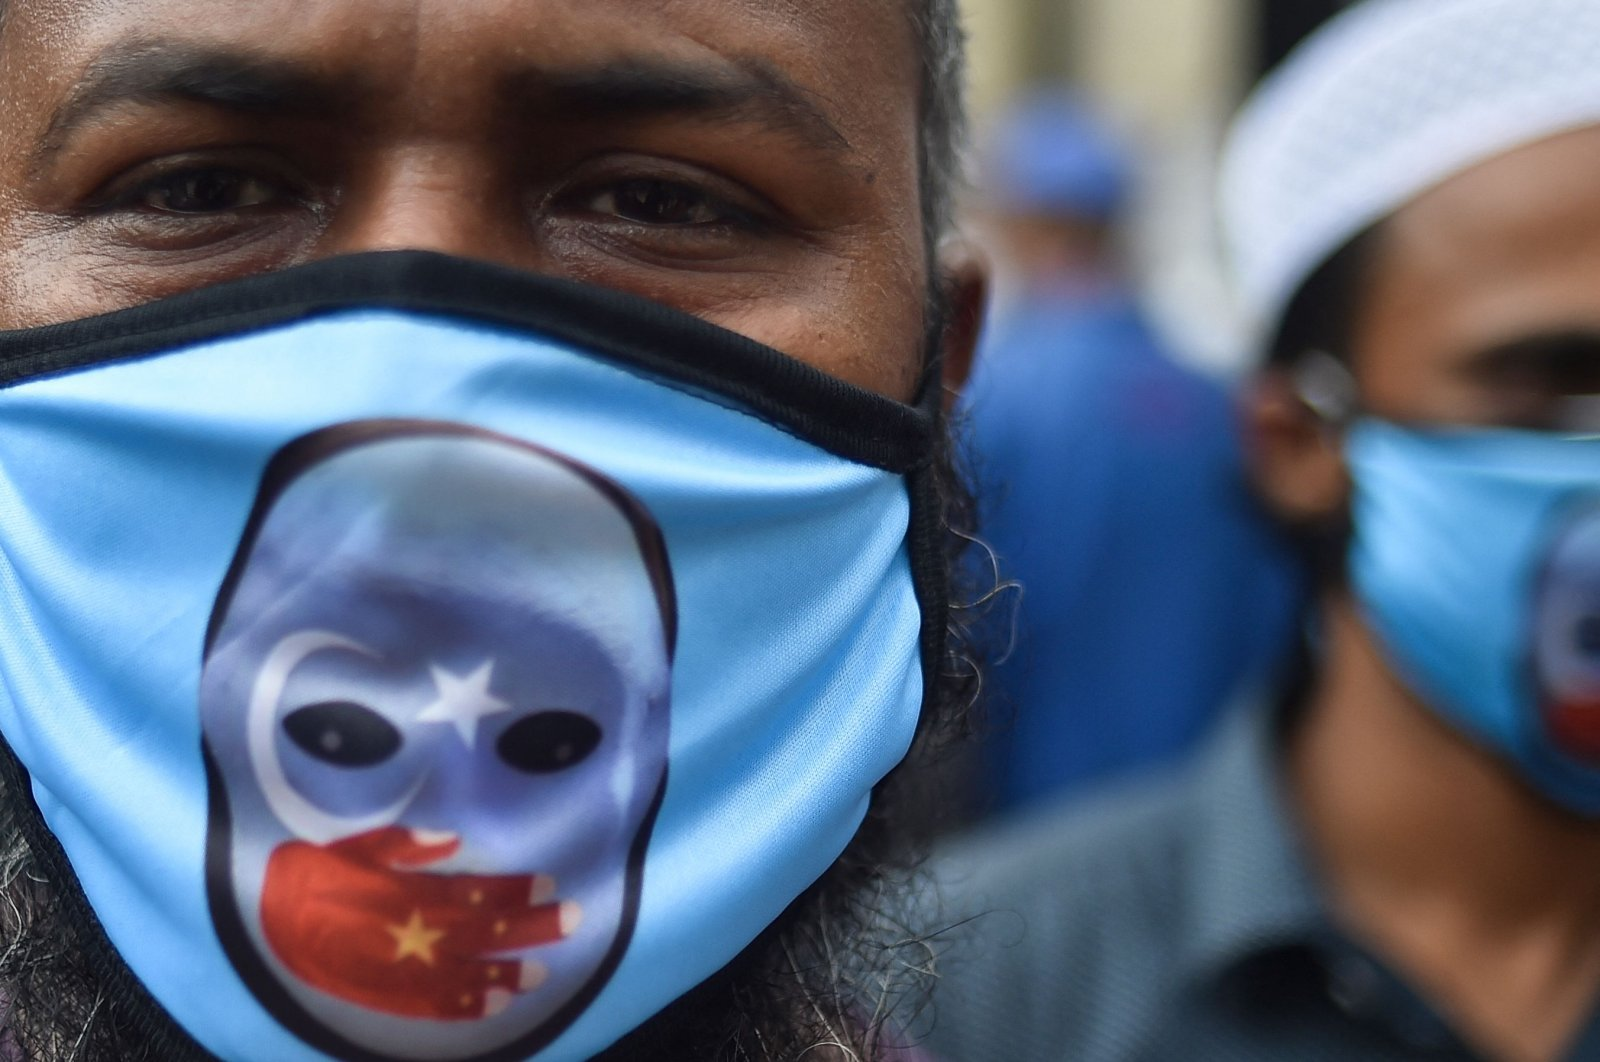 Activists from the political platform Sammilita Islami Oikya Jote stage a protest against the crackdown on Uyghurs in China and to mark the 32nd anniversary of the Tiananmen Square Massacre, in Dhaka, Bangladesh, June 4, 2021. (AFP Photo)